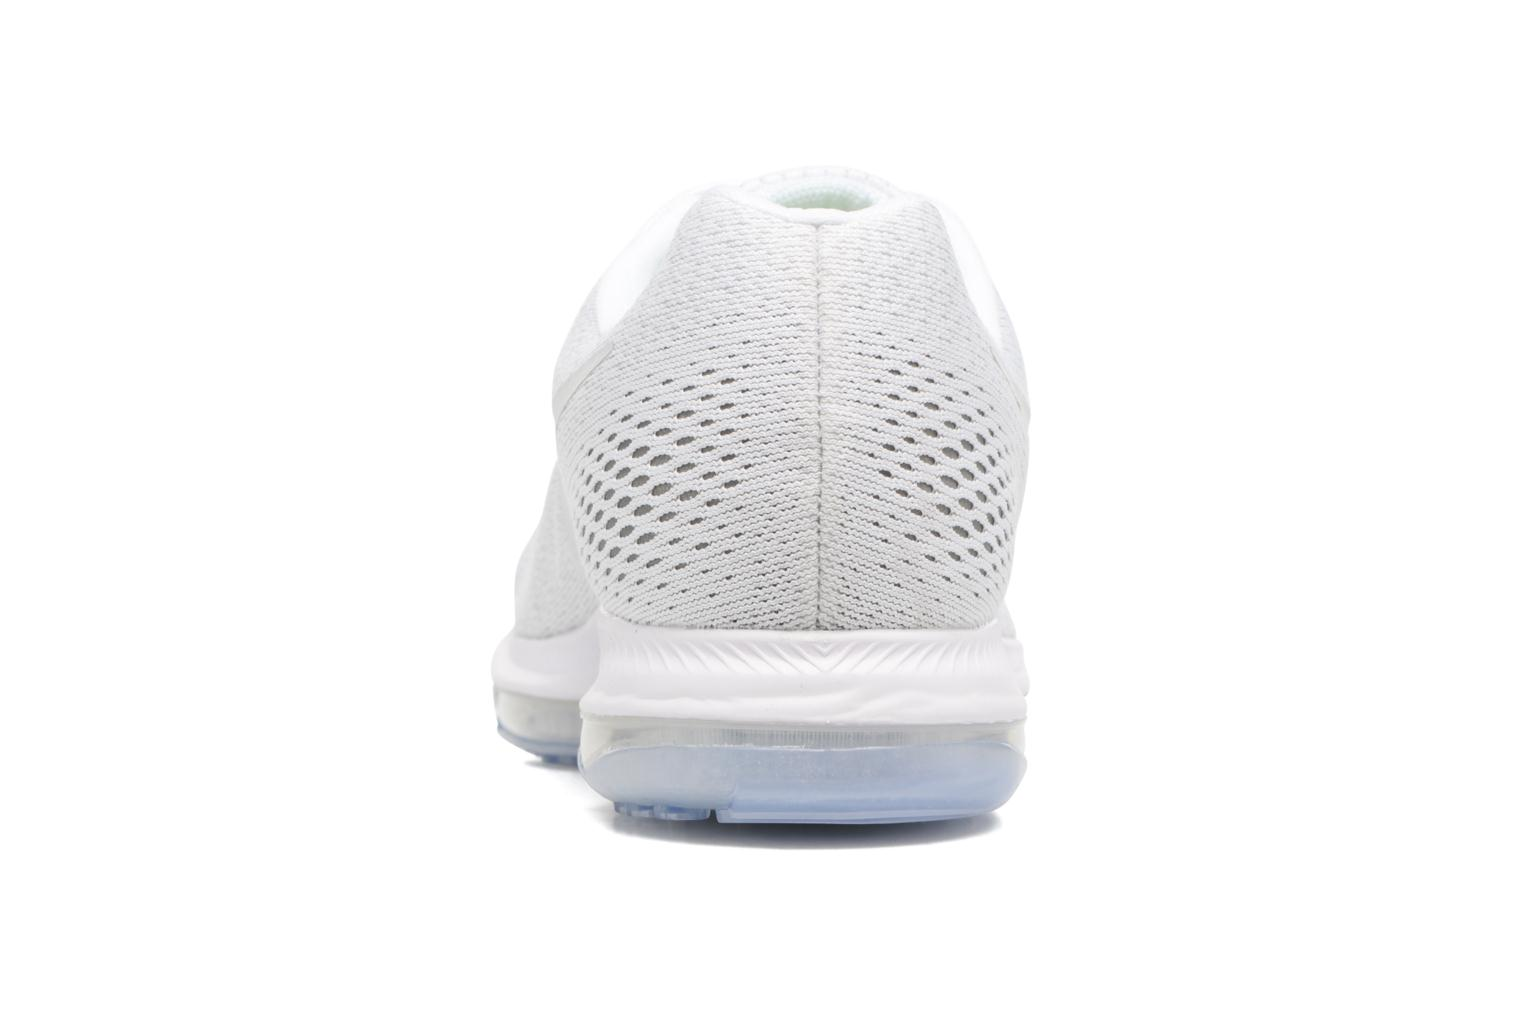 Chaussures de sport Nike Nike Zoom All Out Low Blanc vue droite